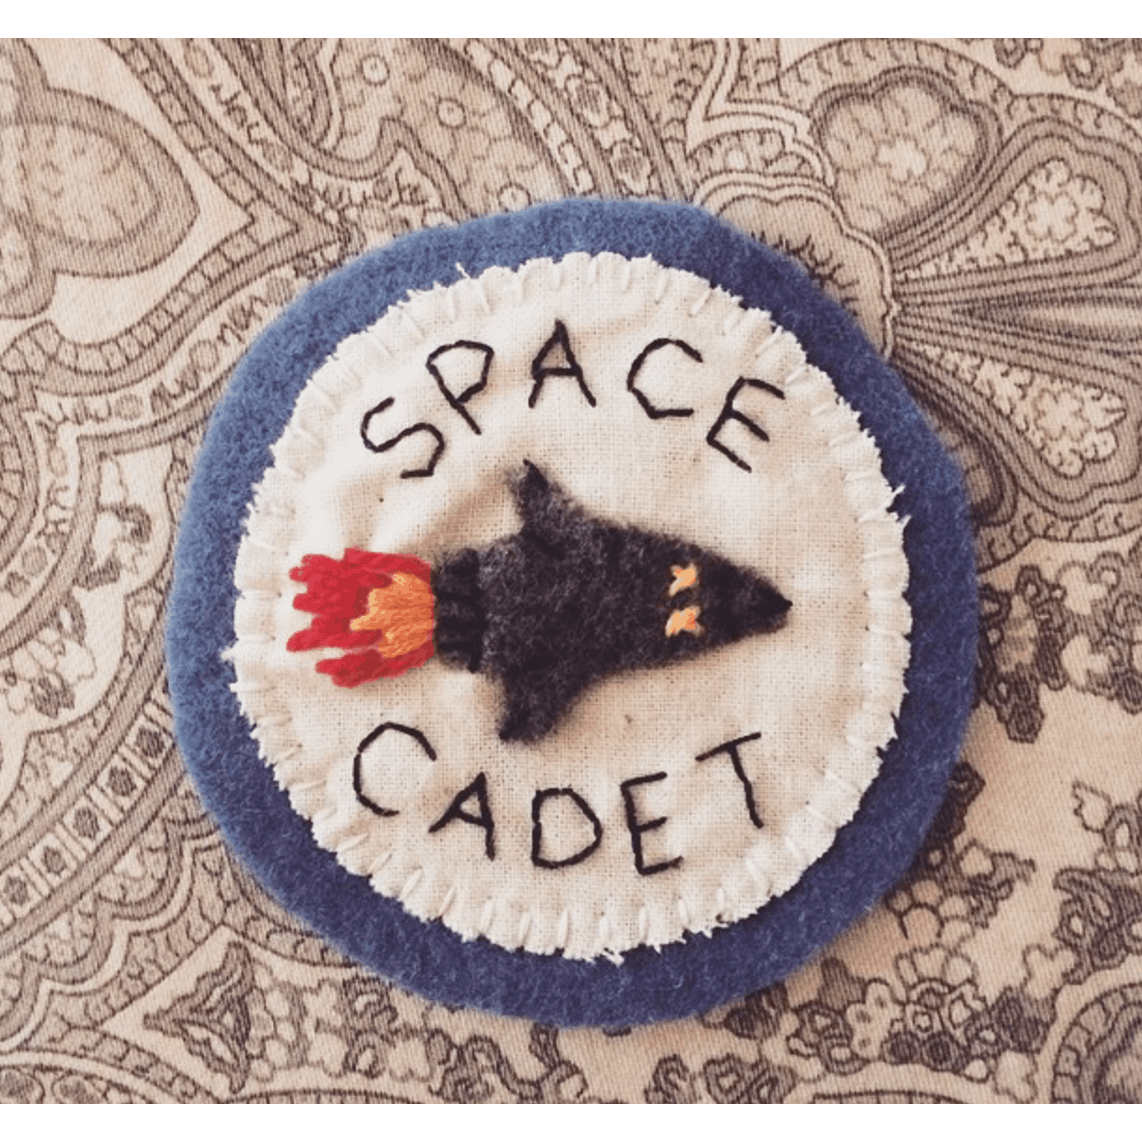 Felt and embroidery camp style patches